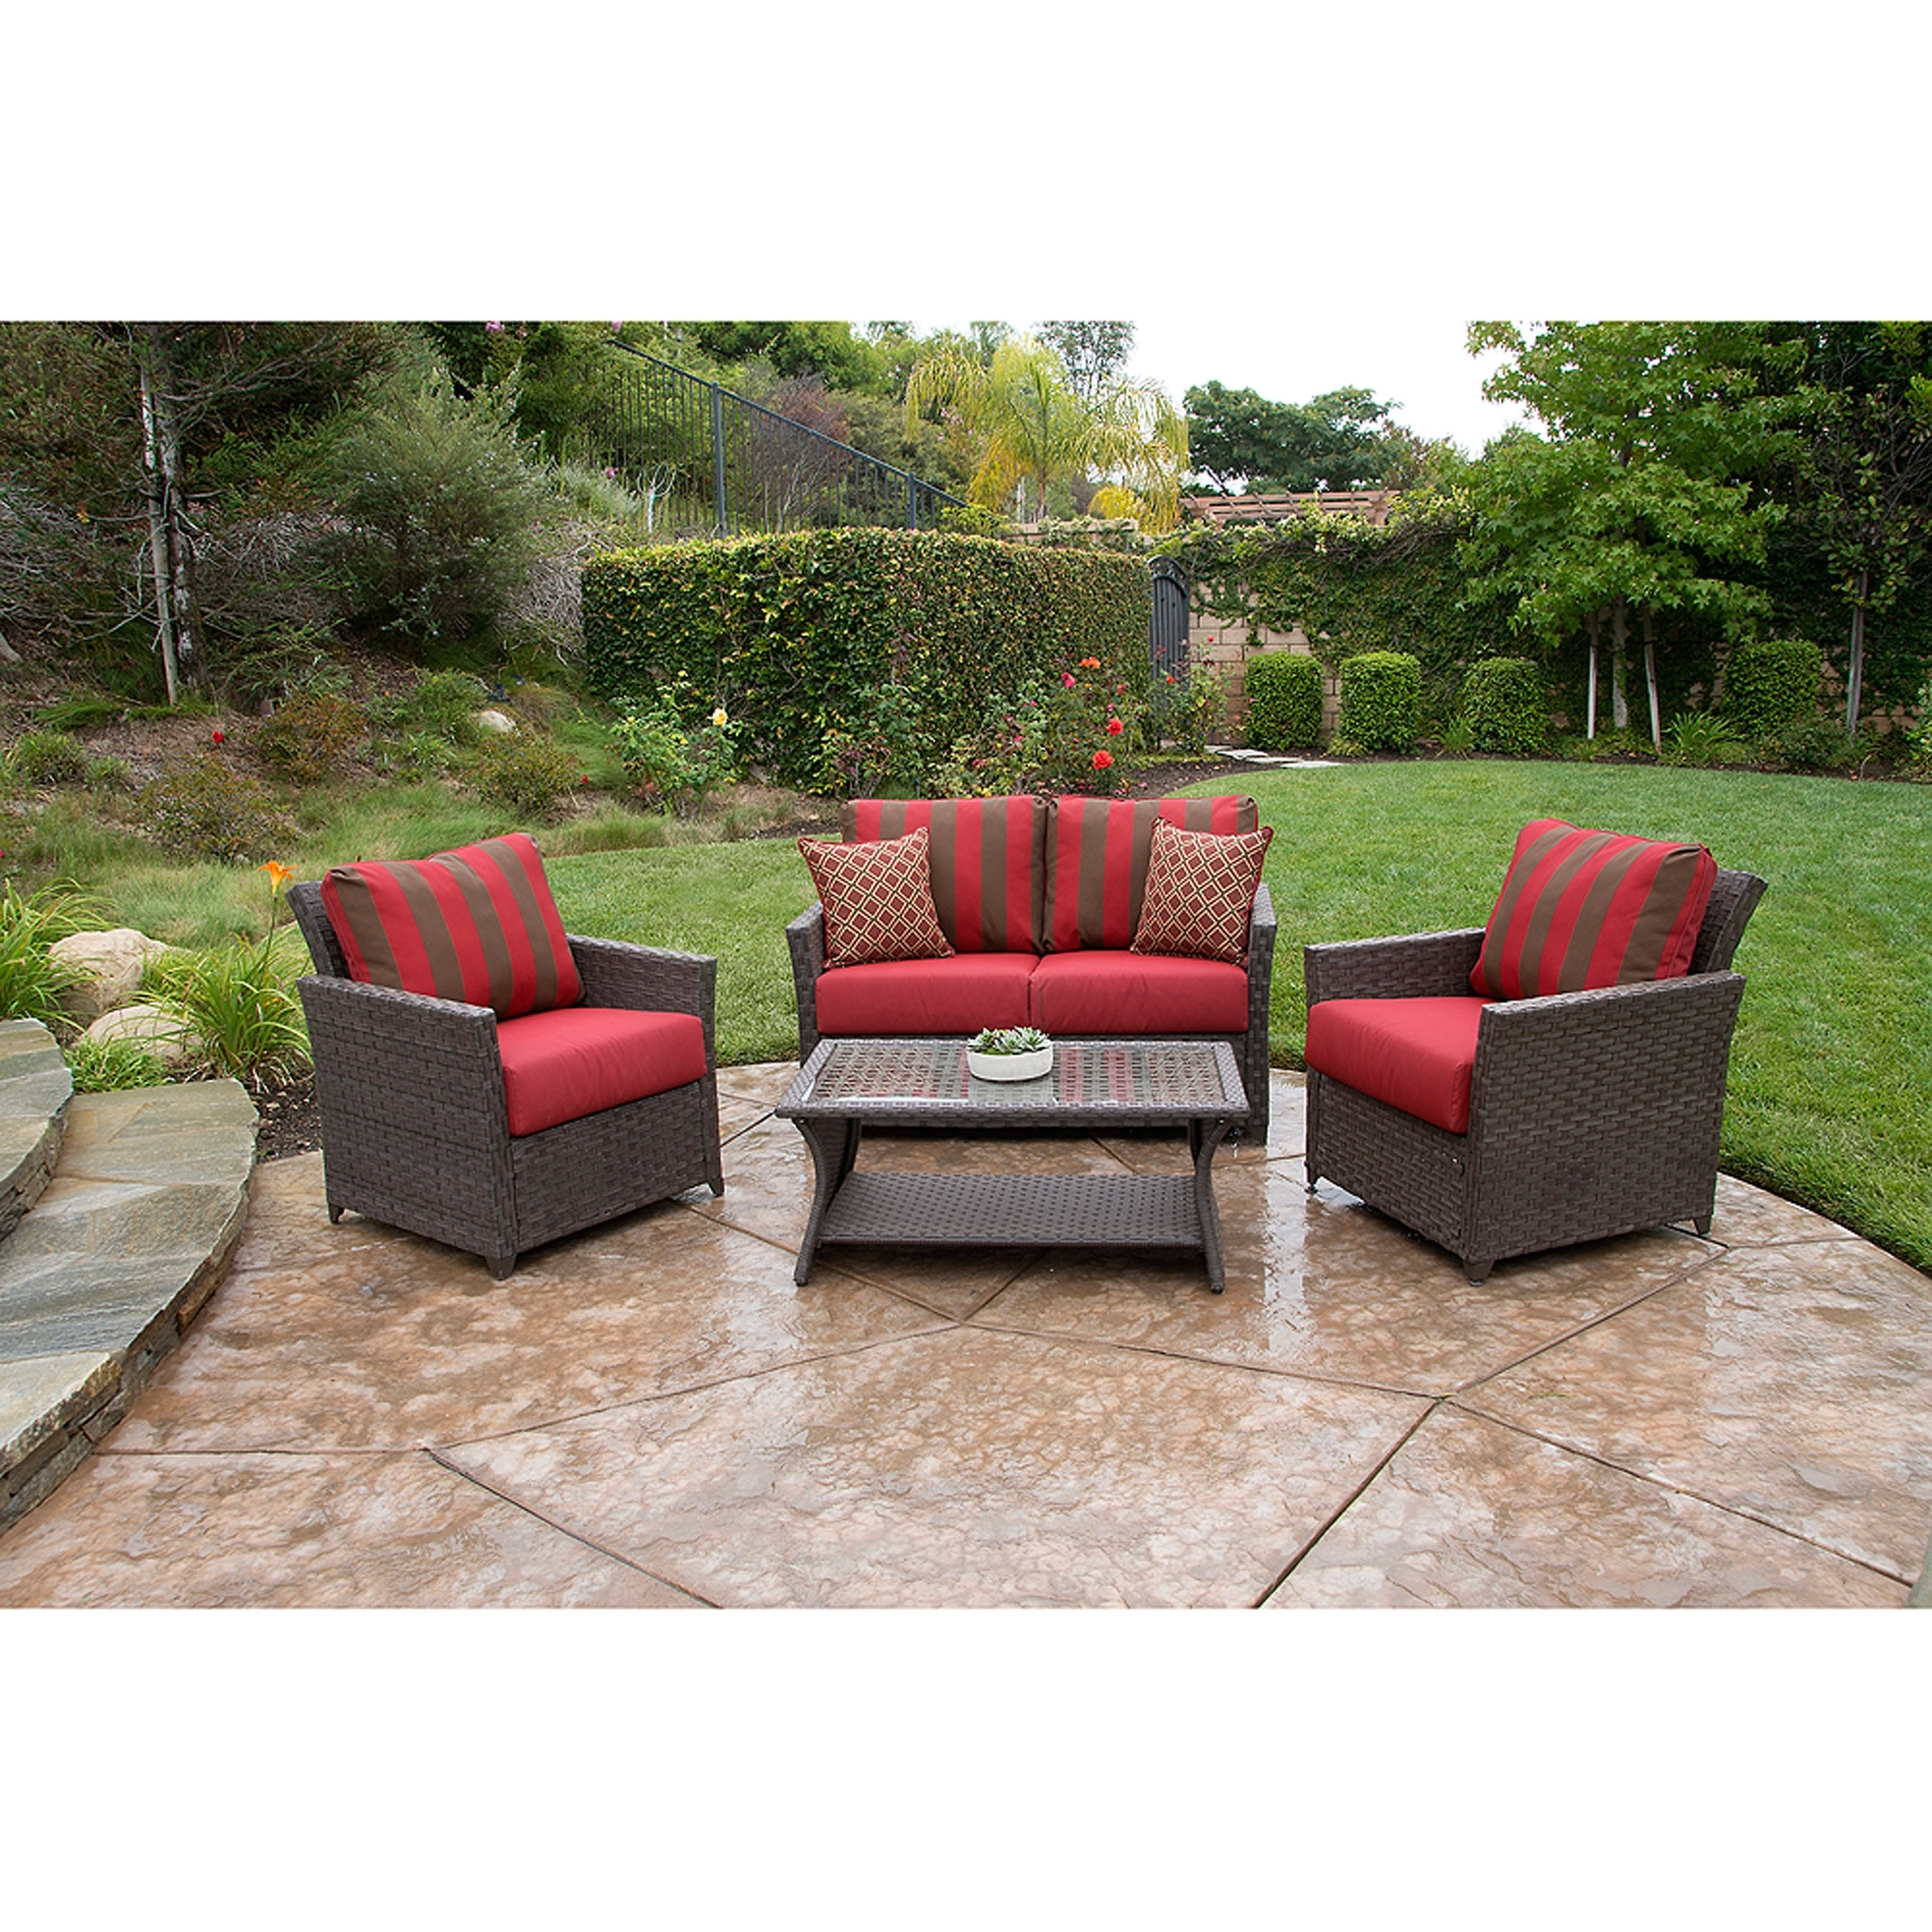 Better Homes And Gardens Rushreed Deep Seating 4 Piece Patio Regarding Most Current Deep Seating Patio Conversation Sets (View 15 of 15)